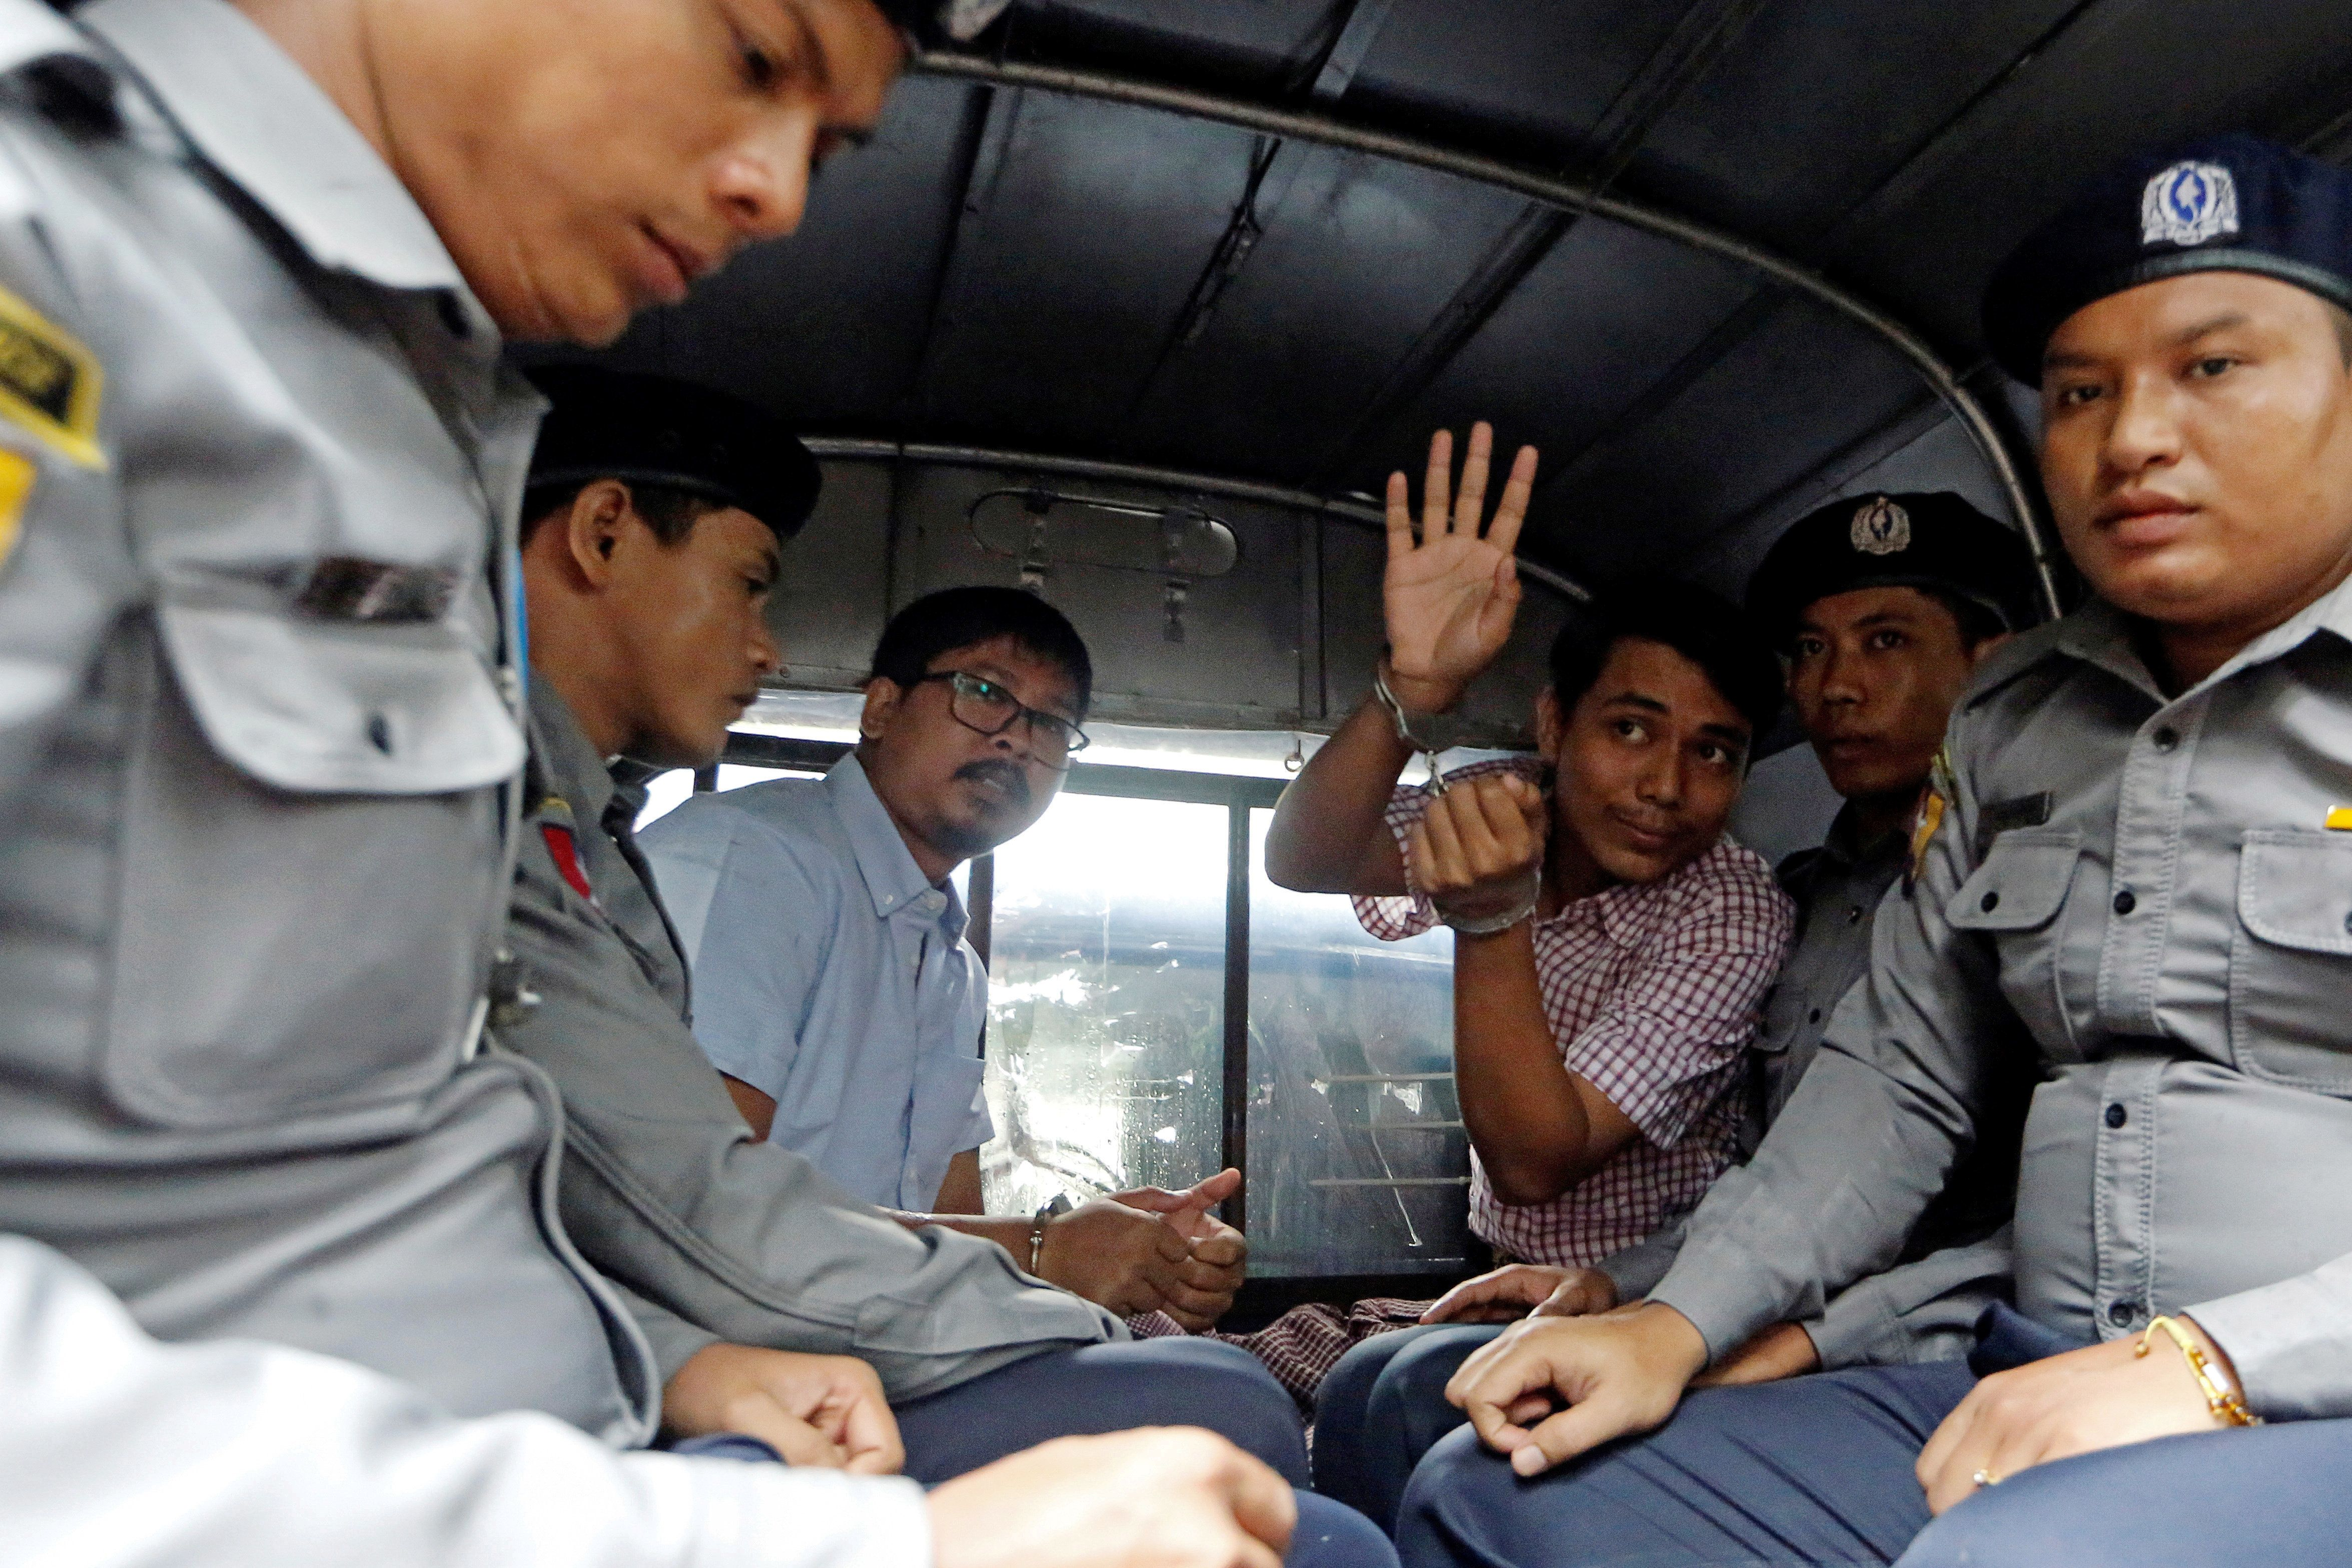 Detained Reuters journalist Wa Lone and Kyaw Soe Oo sit beside police officers as they leave Insein court in Yangon, Myanmar July 9, 2018. REUTERS/Ann Wang     TPX IMAGES OF THE DAY